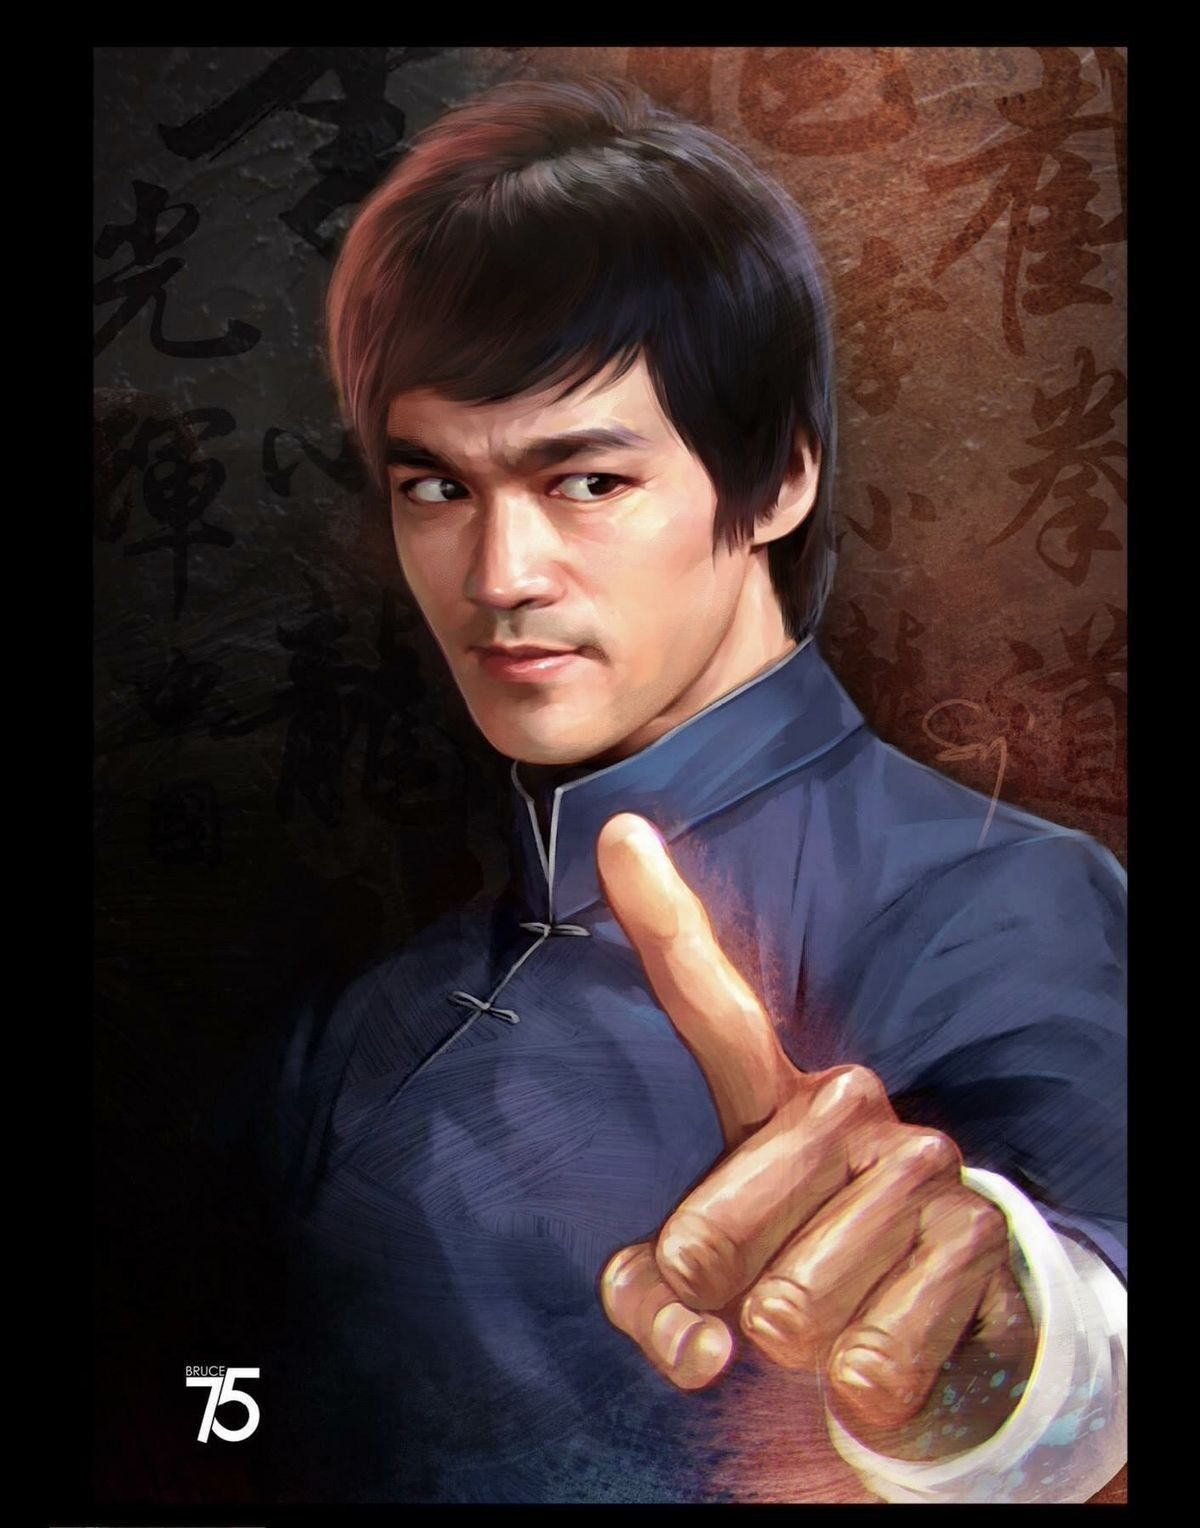 Pin By 168 Pro Kh On Doneyen Bruce Lee Pictures Bruce Lee